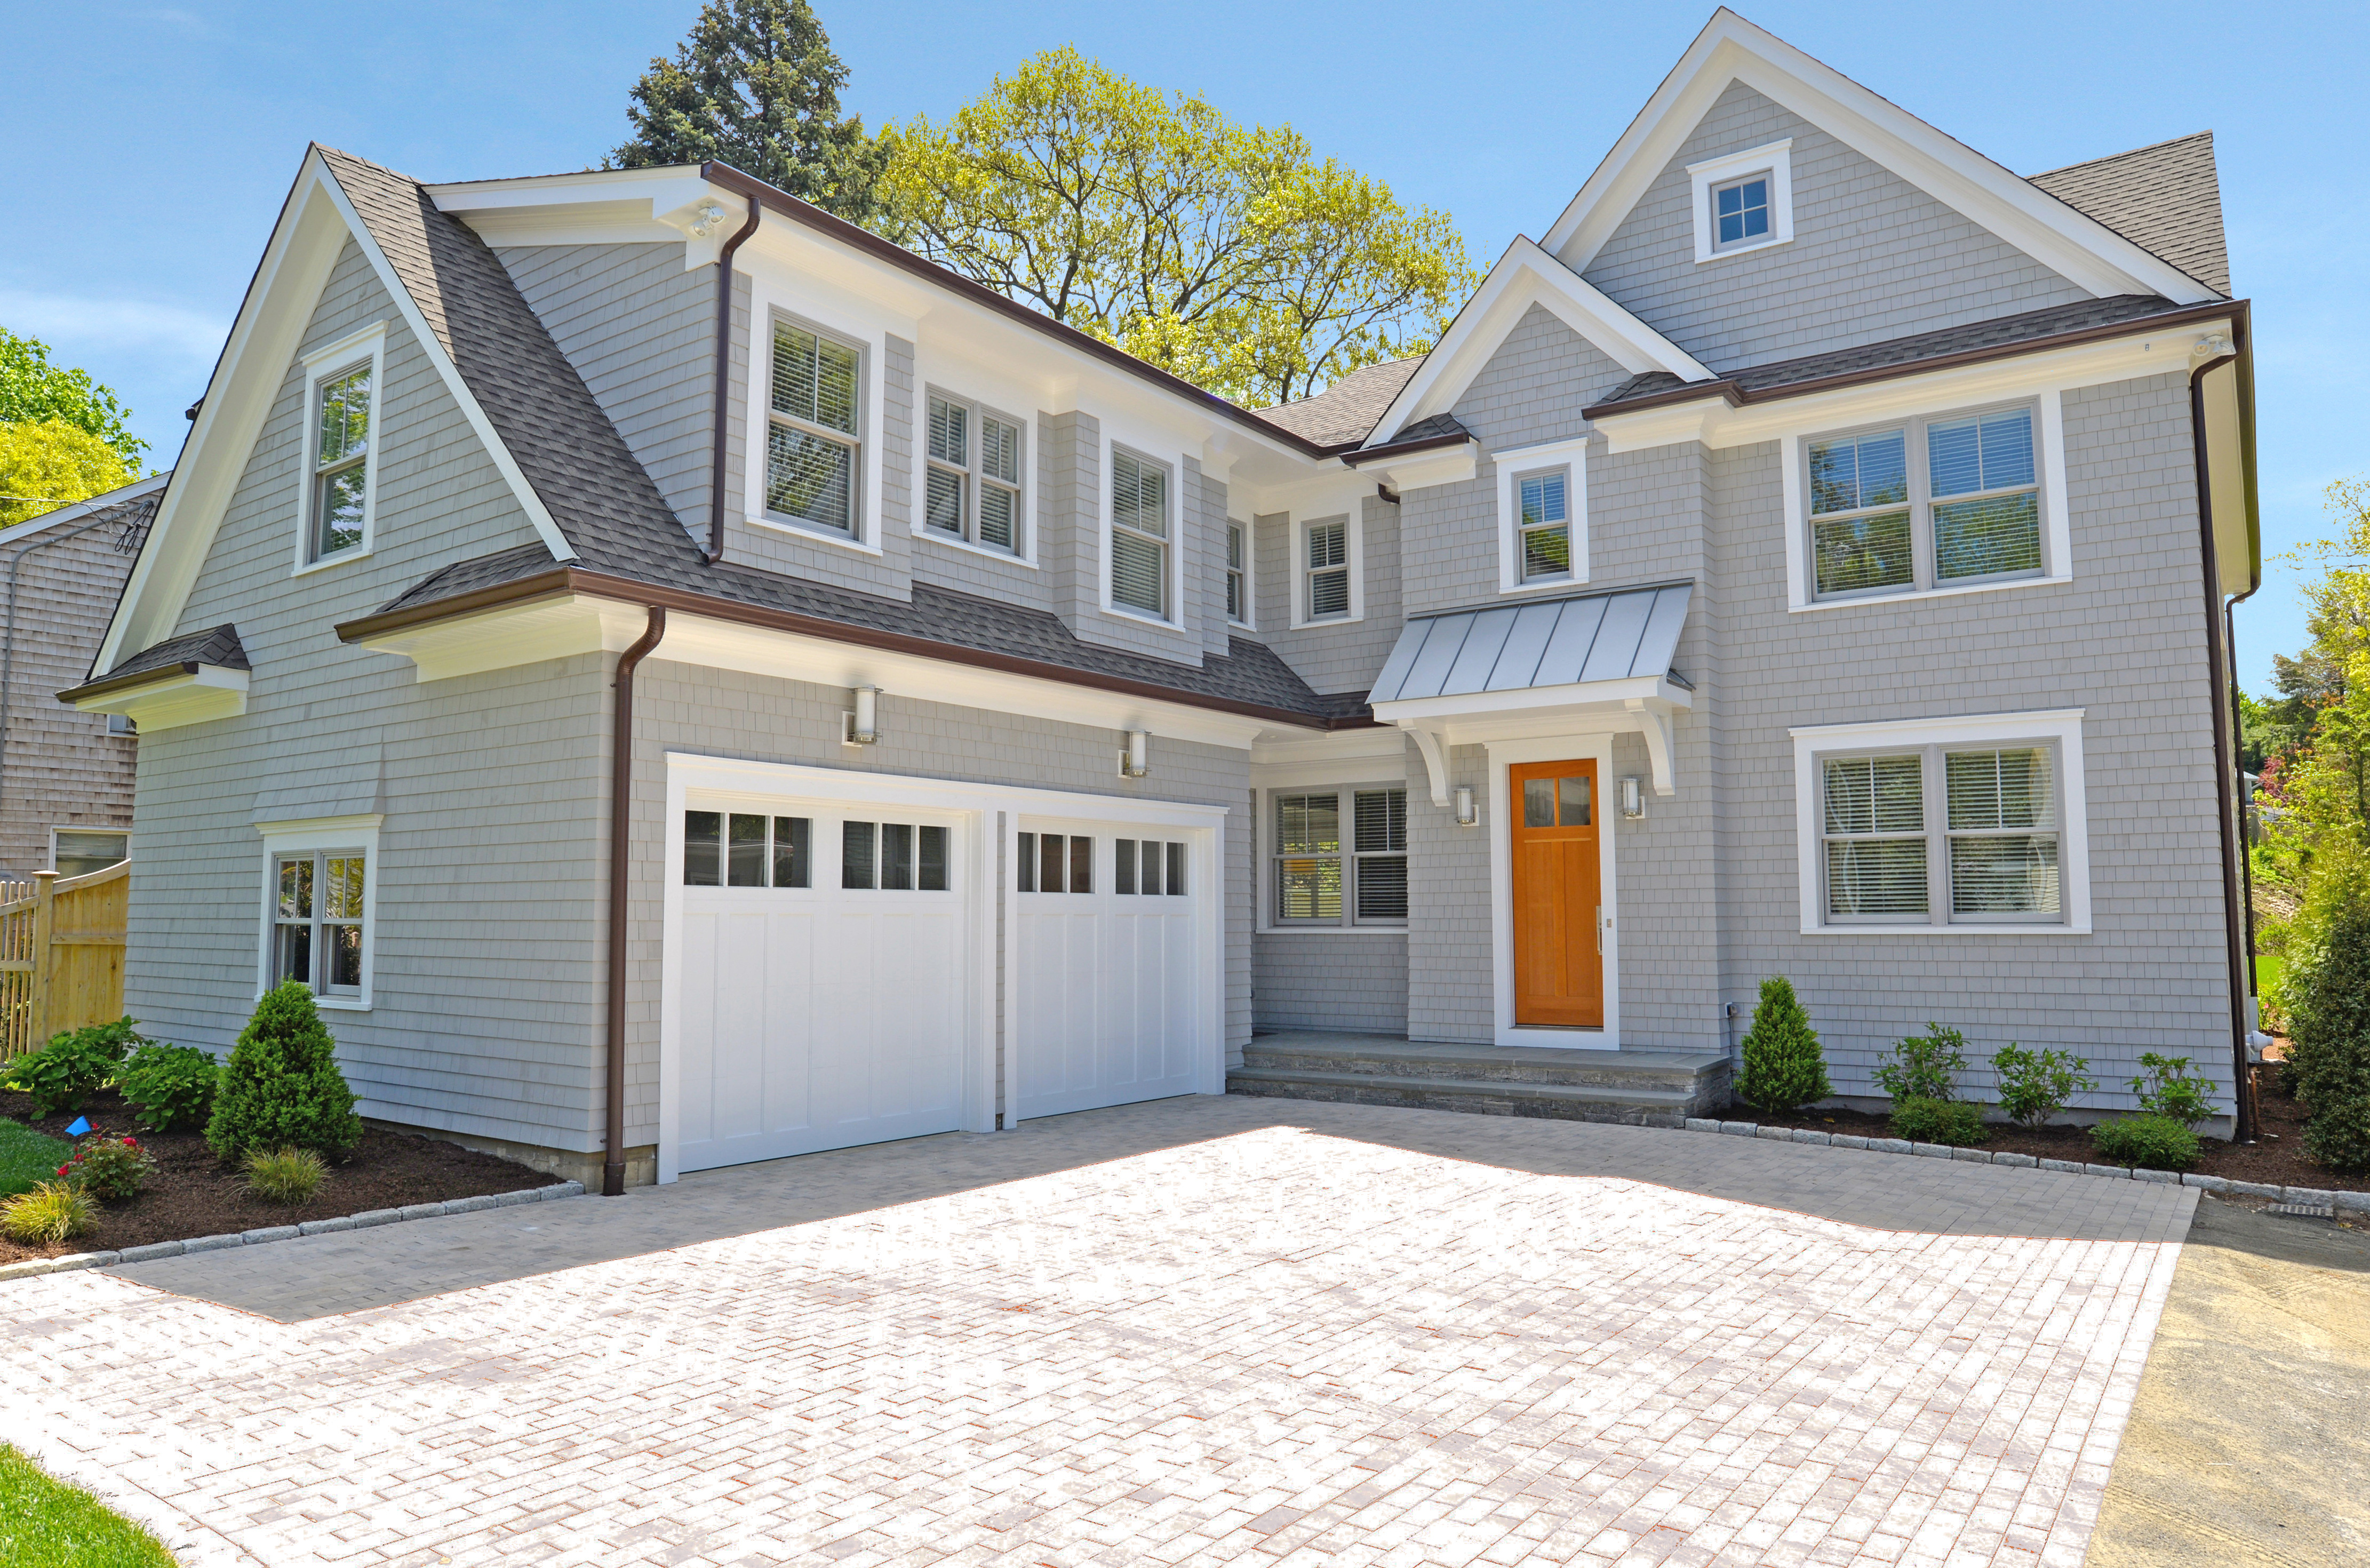 Single Family Home for Sale at New Construction 15 Vani Court Westport, Connecticut, 06880 United States